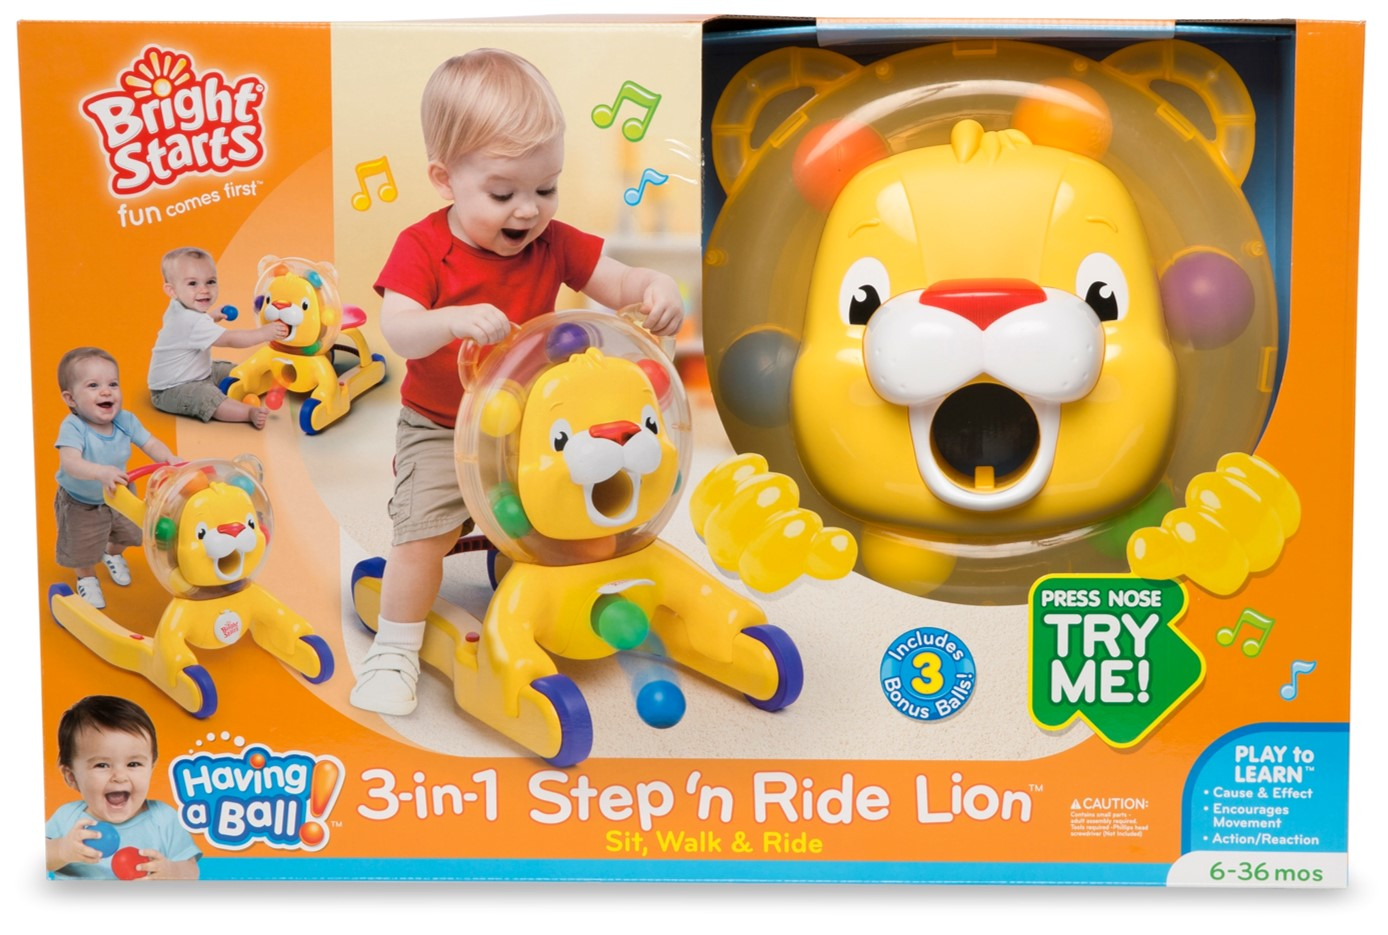 Bright Starts 3-in-1 Step n' Ride Lion